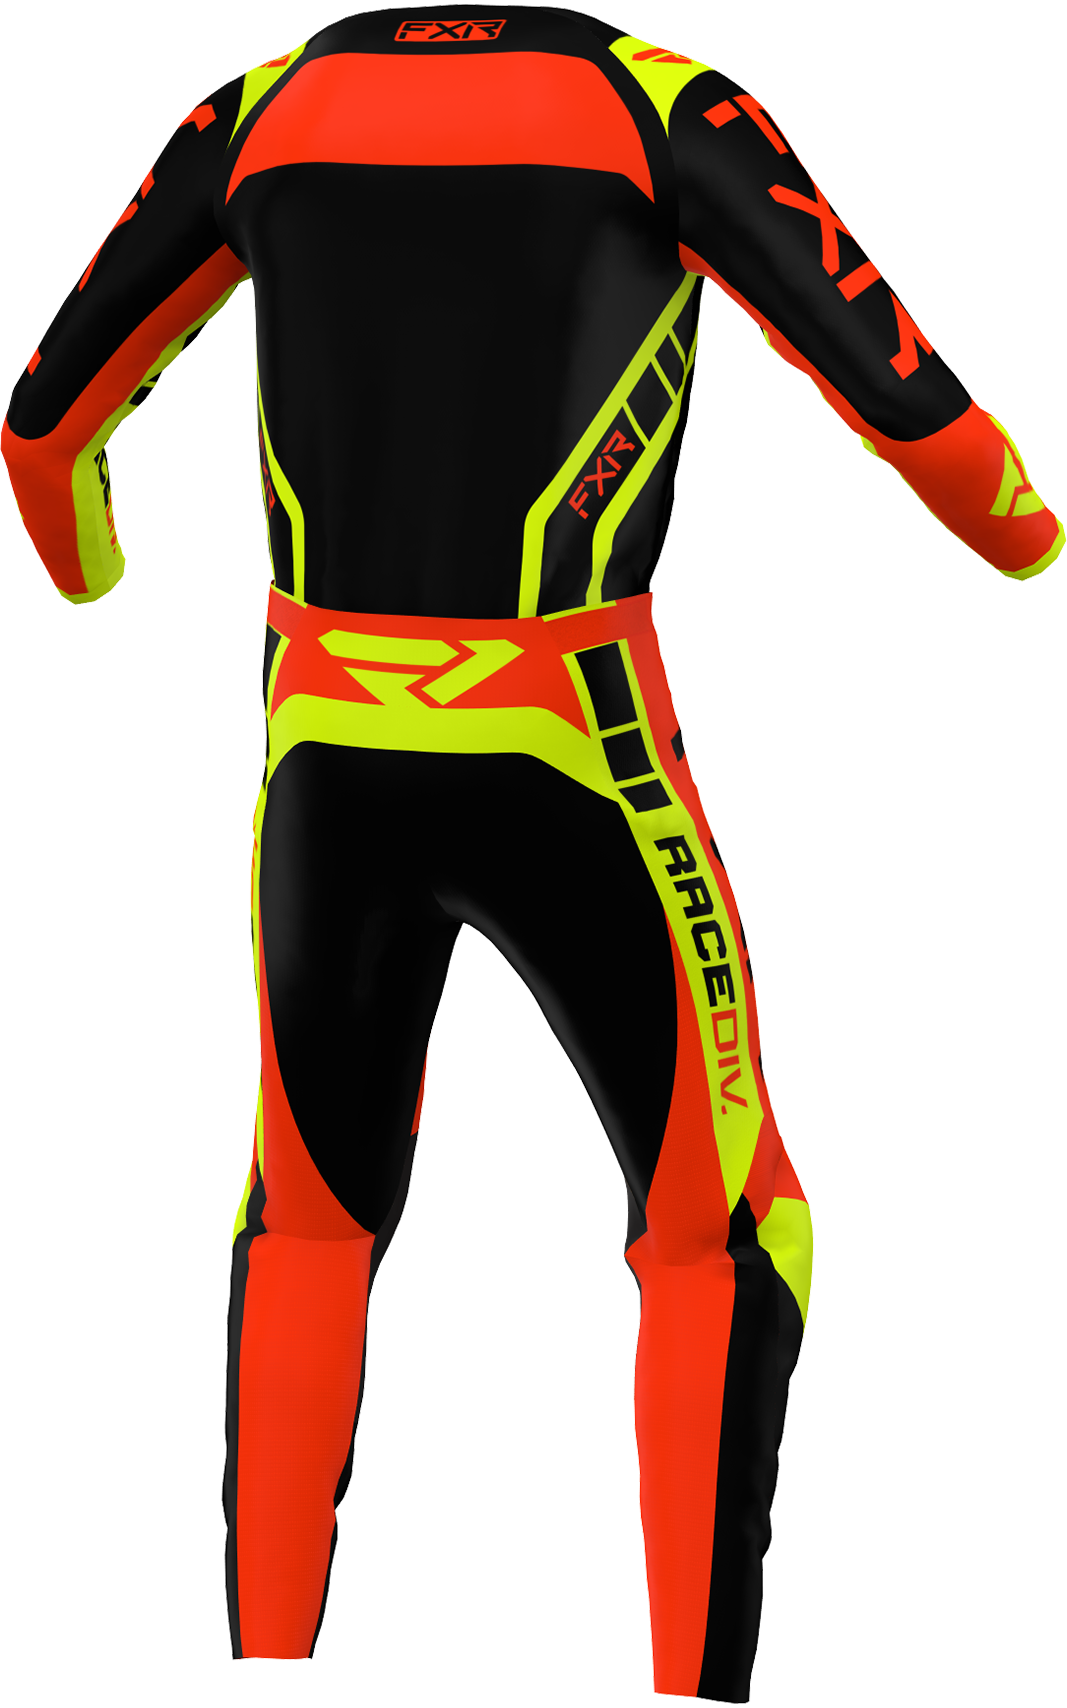 A 3D image of FXR's Clutch Pro MX Jersey and Pant 22 in Black / Nuke Red / Hivis colorway